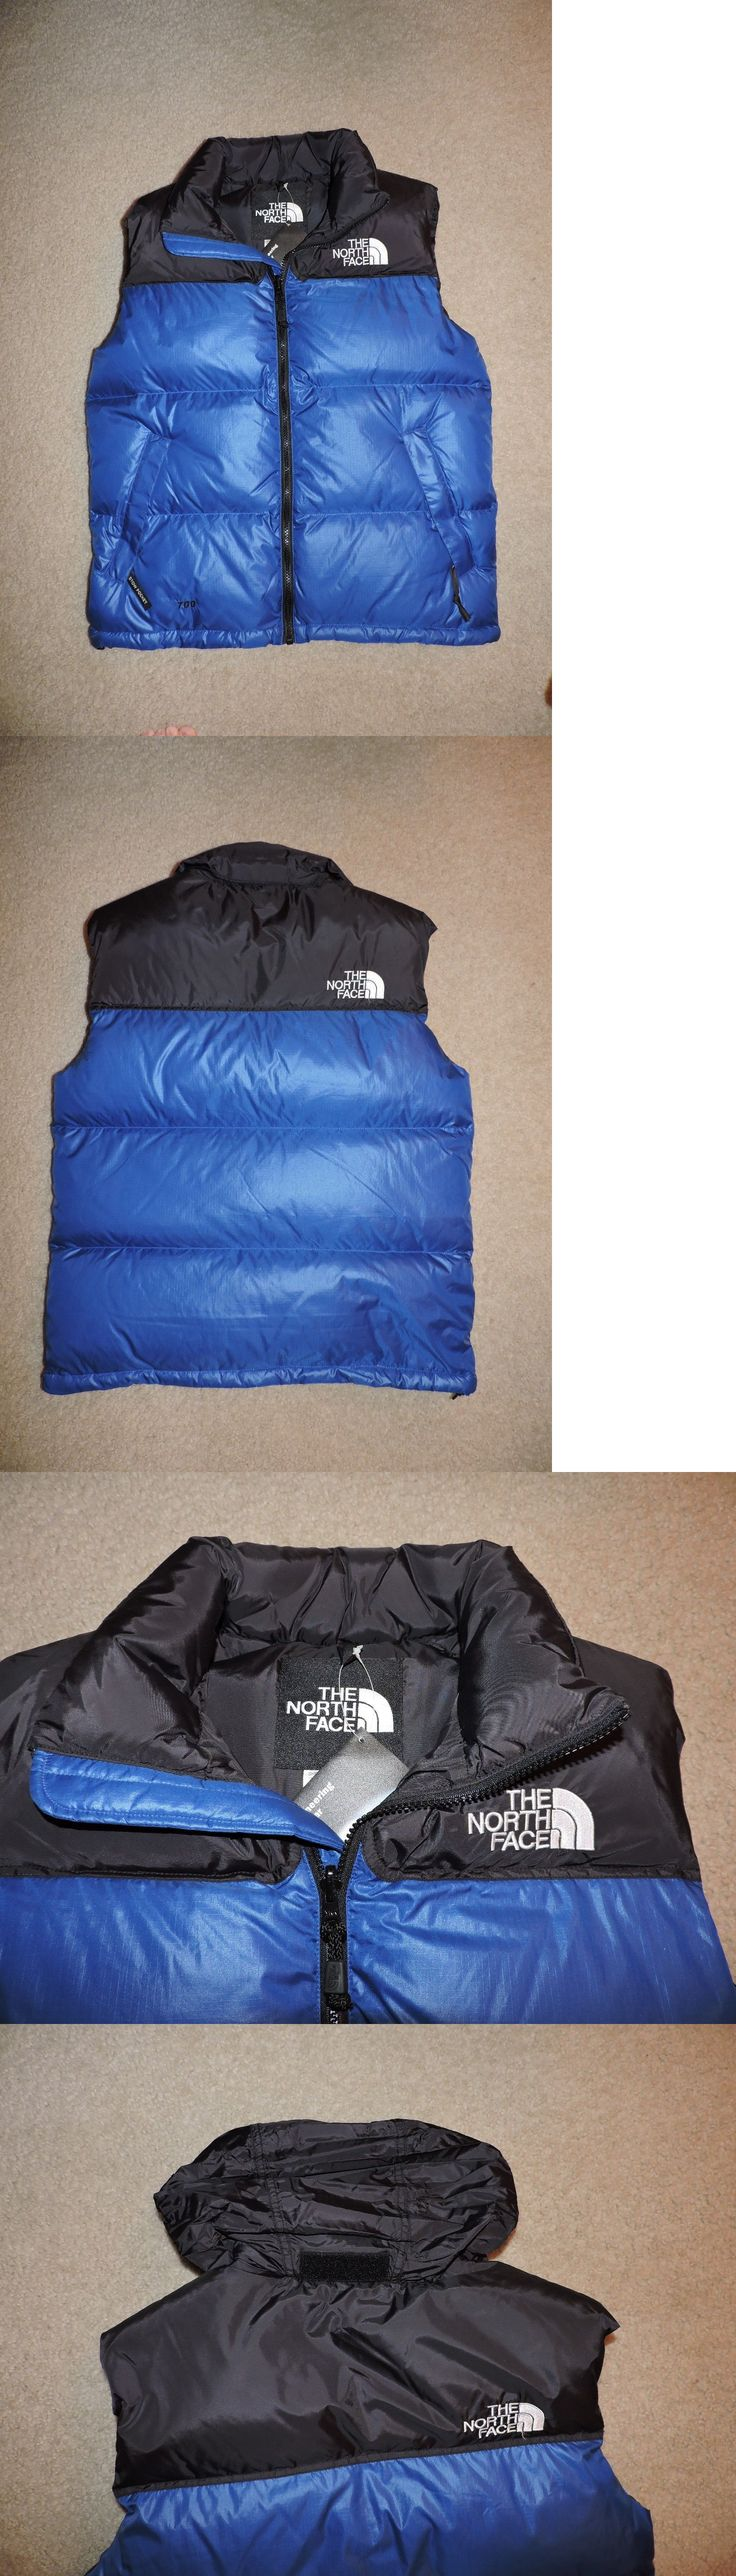 Vests 179012: Mens Extra Large The North Face Nuptse Vest 700 Fill New With Tags Blue Blk -> BUY IT NOW ONLY: $99.99 on eBay!